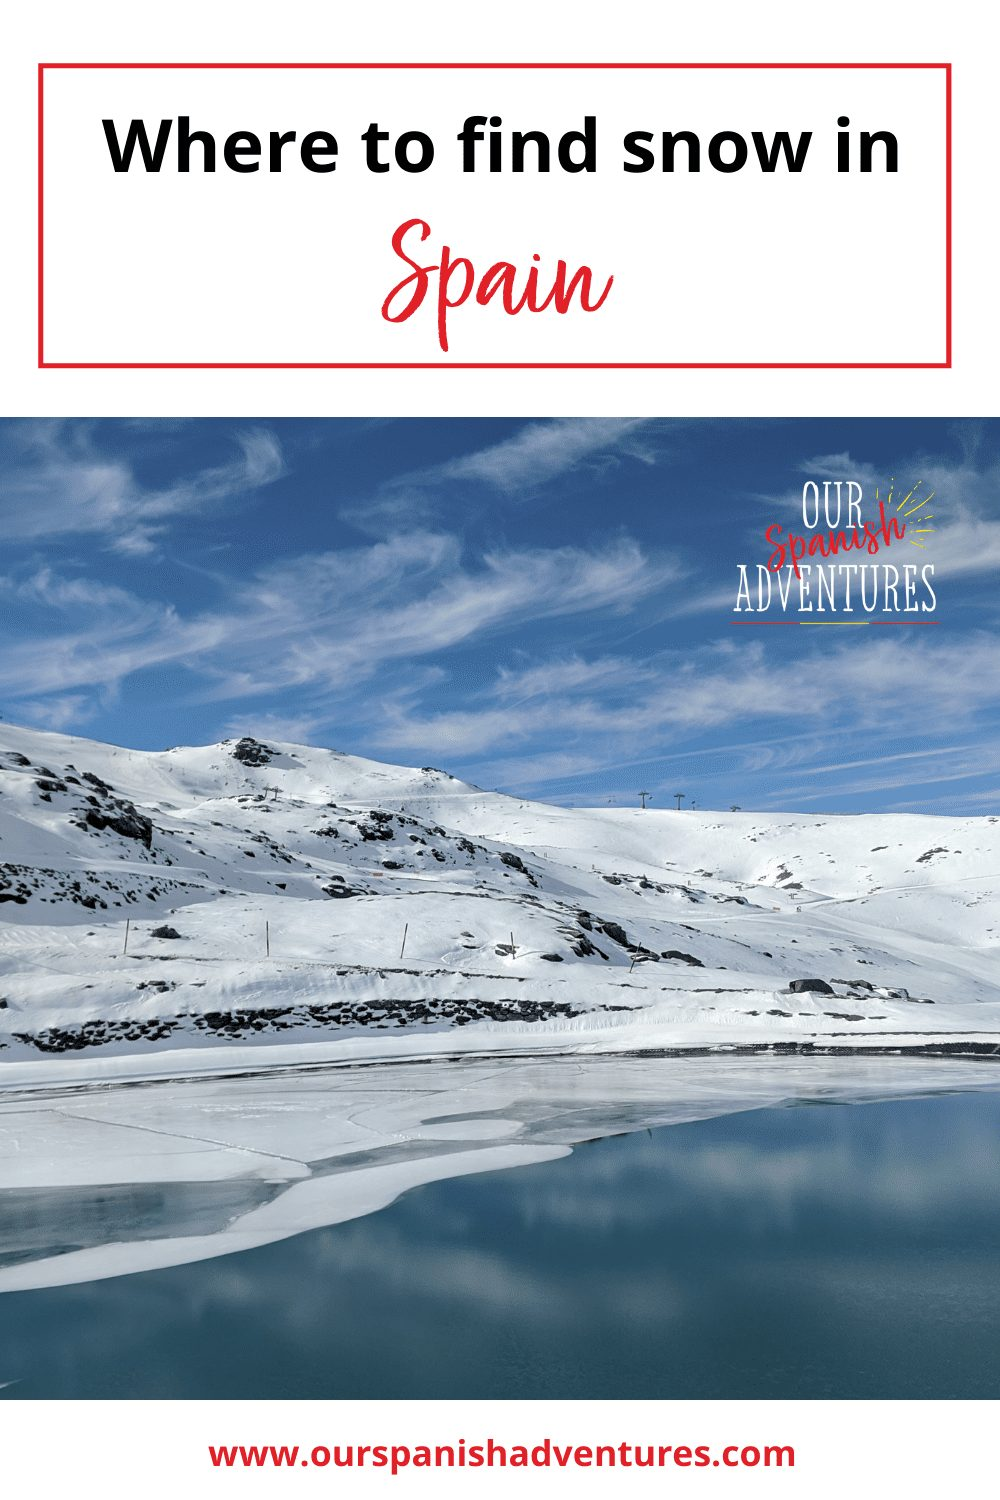 Where in Spain to find snow | Our Spanish Adventures